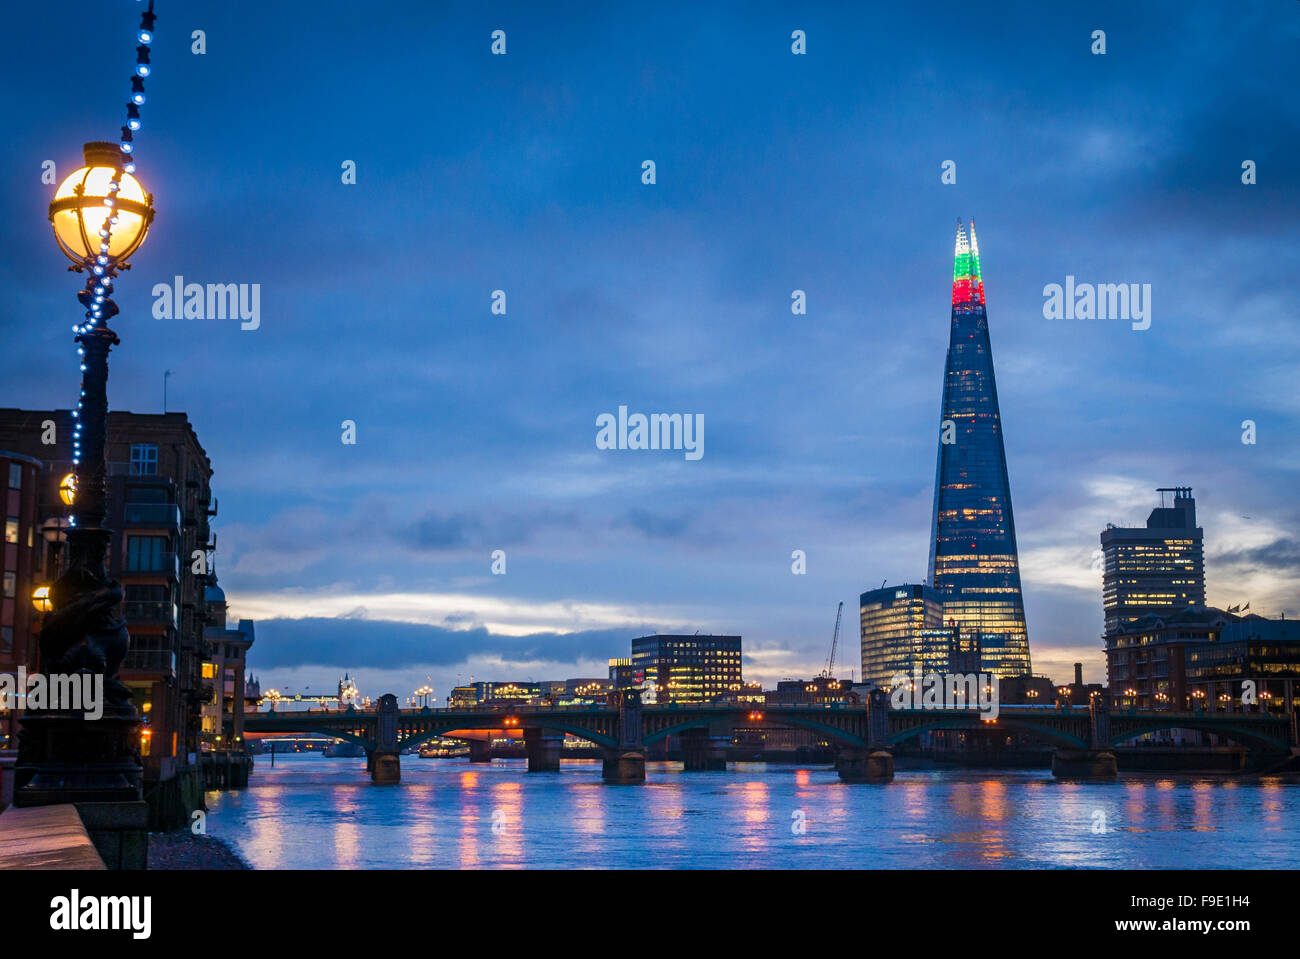 The Shard Building  light's up for Christmas with alternating Green, Red and White at the top - Stock Image